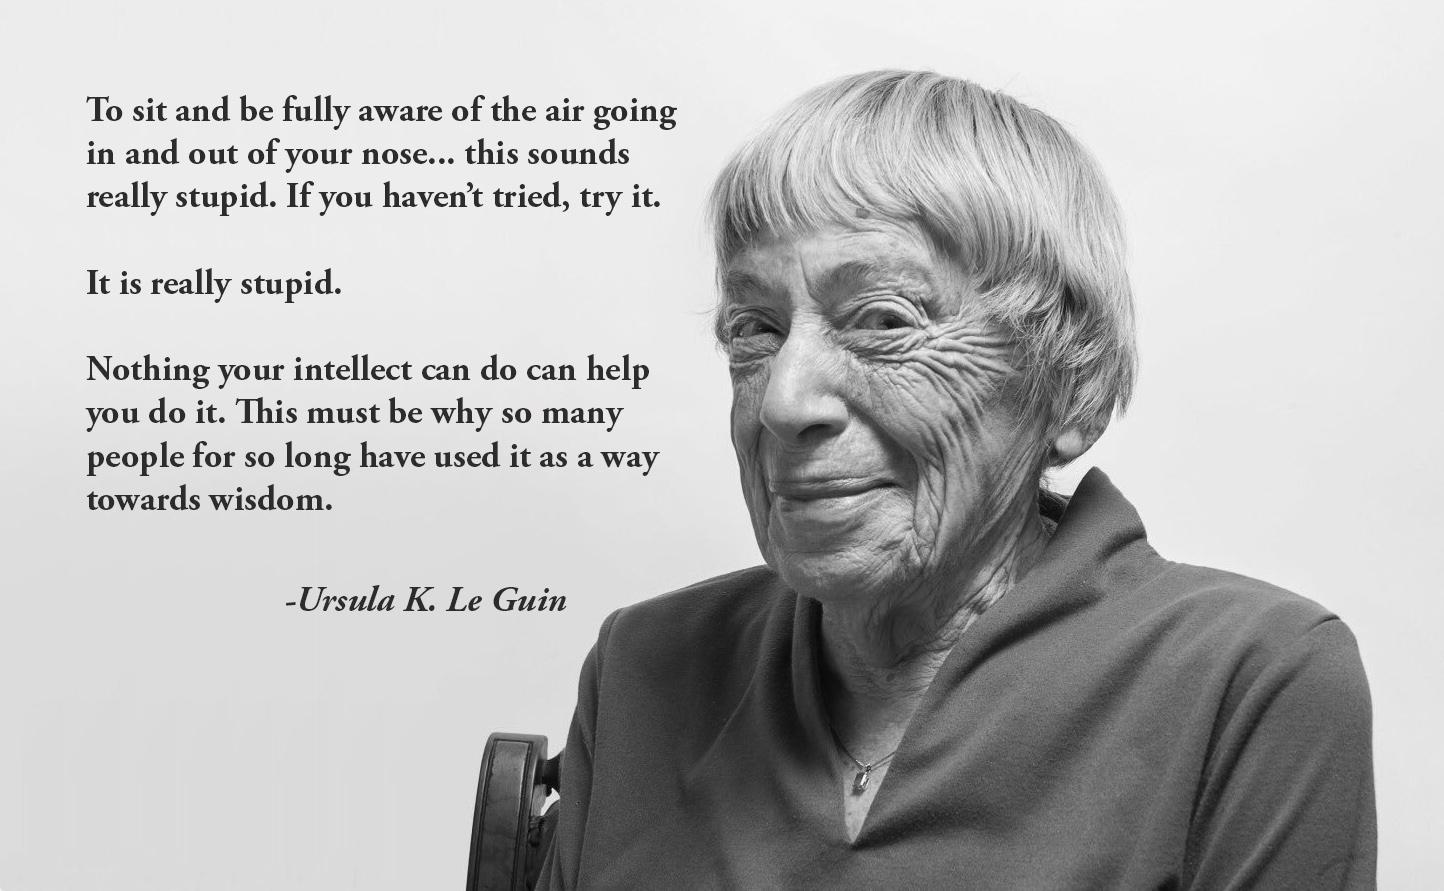 """To sit and be fully aware of the air going in and out of your nose… this sounds really stupid. . . It is really stupid. Nothing your intellect can do can help you do it. This must be why so many people for so long have used it as a way towards wisdom."" – Ursula K. Le Guin [1444×891]"